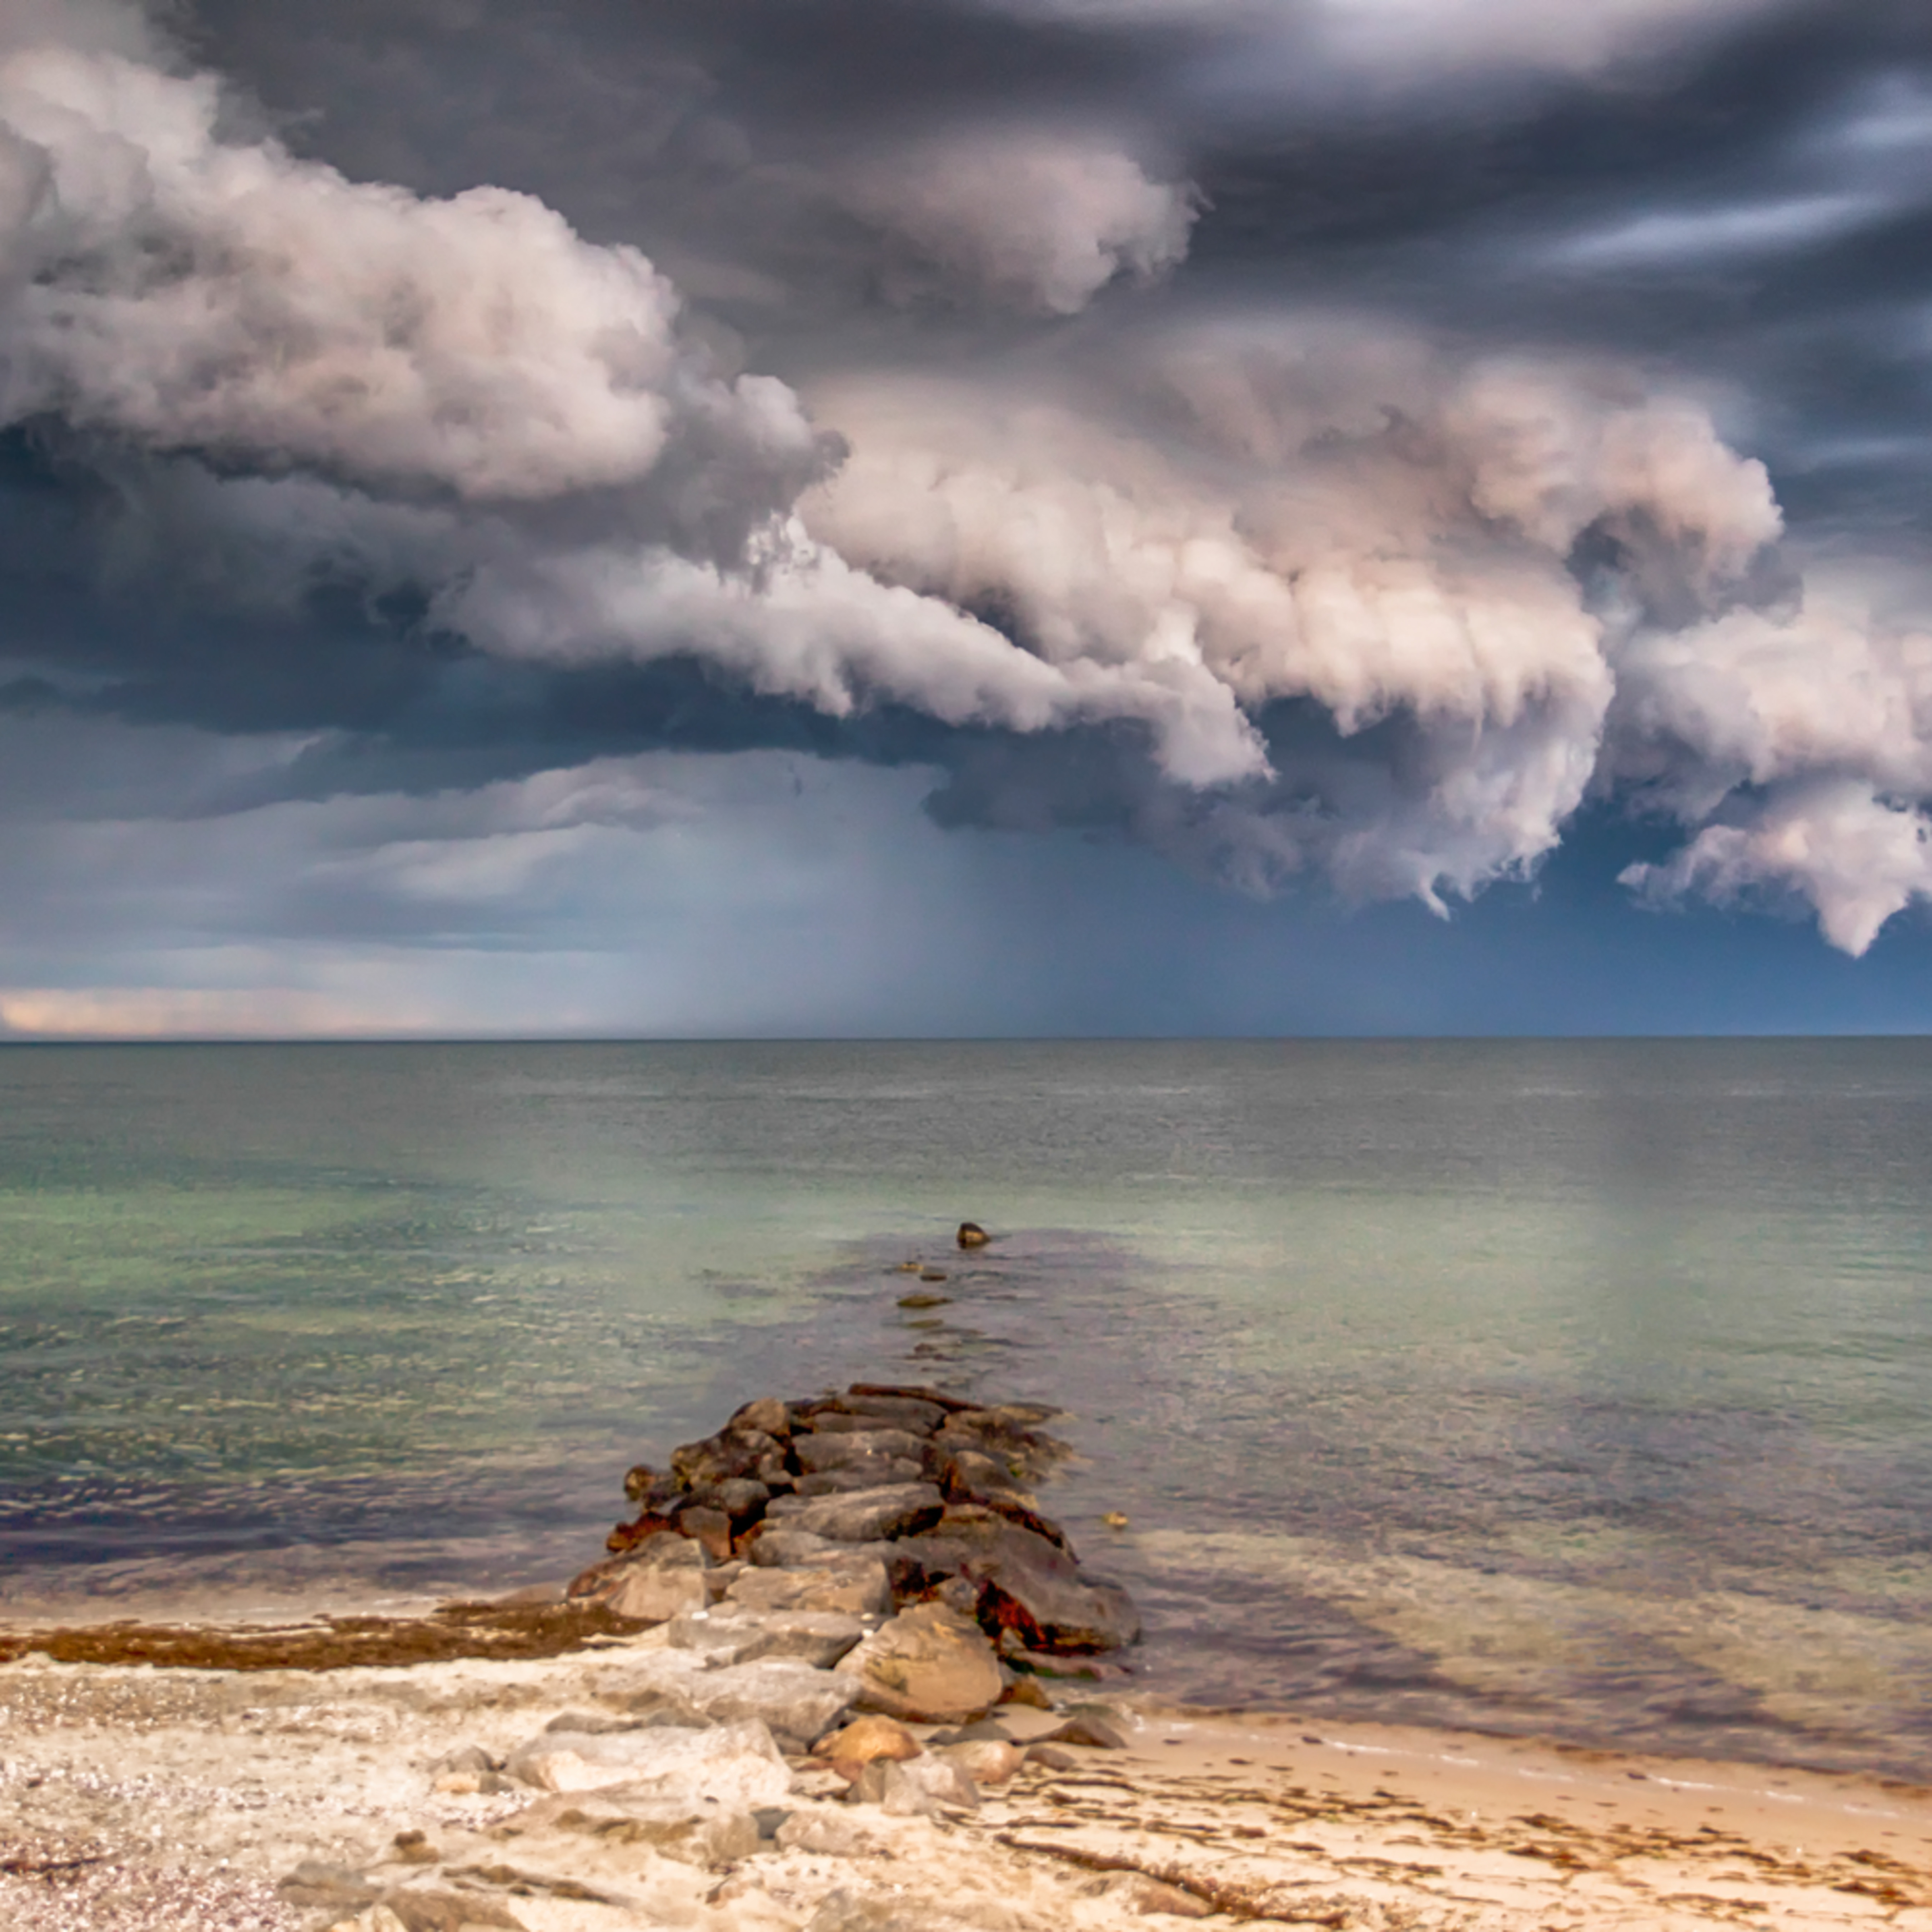 Inkwell thunderstorm clouds iwomtt